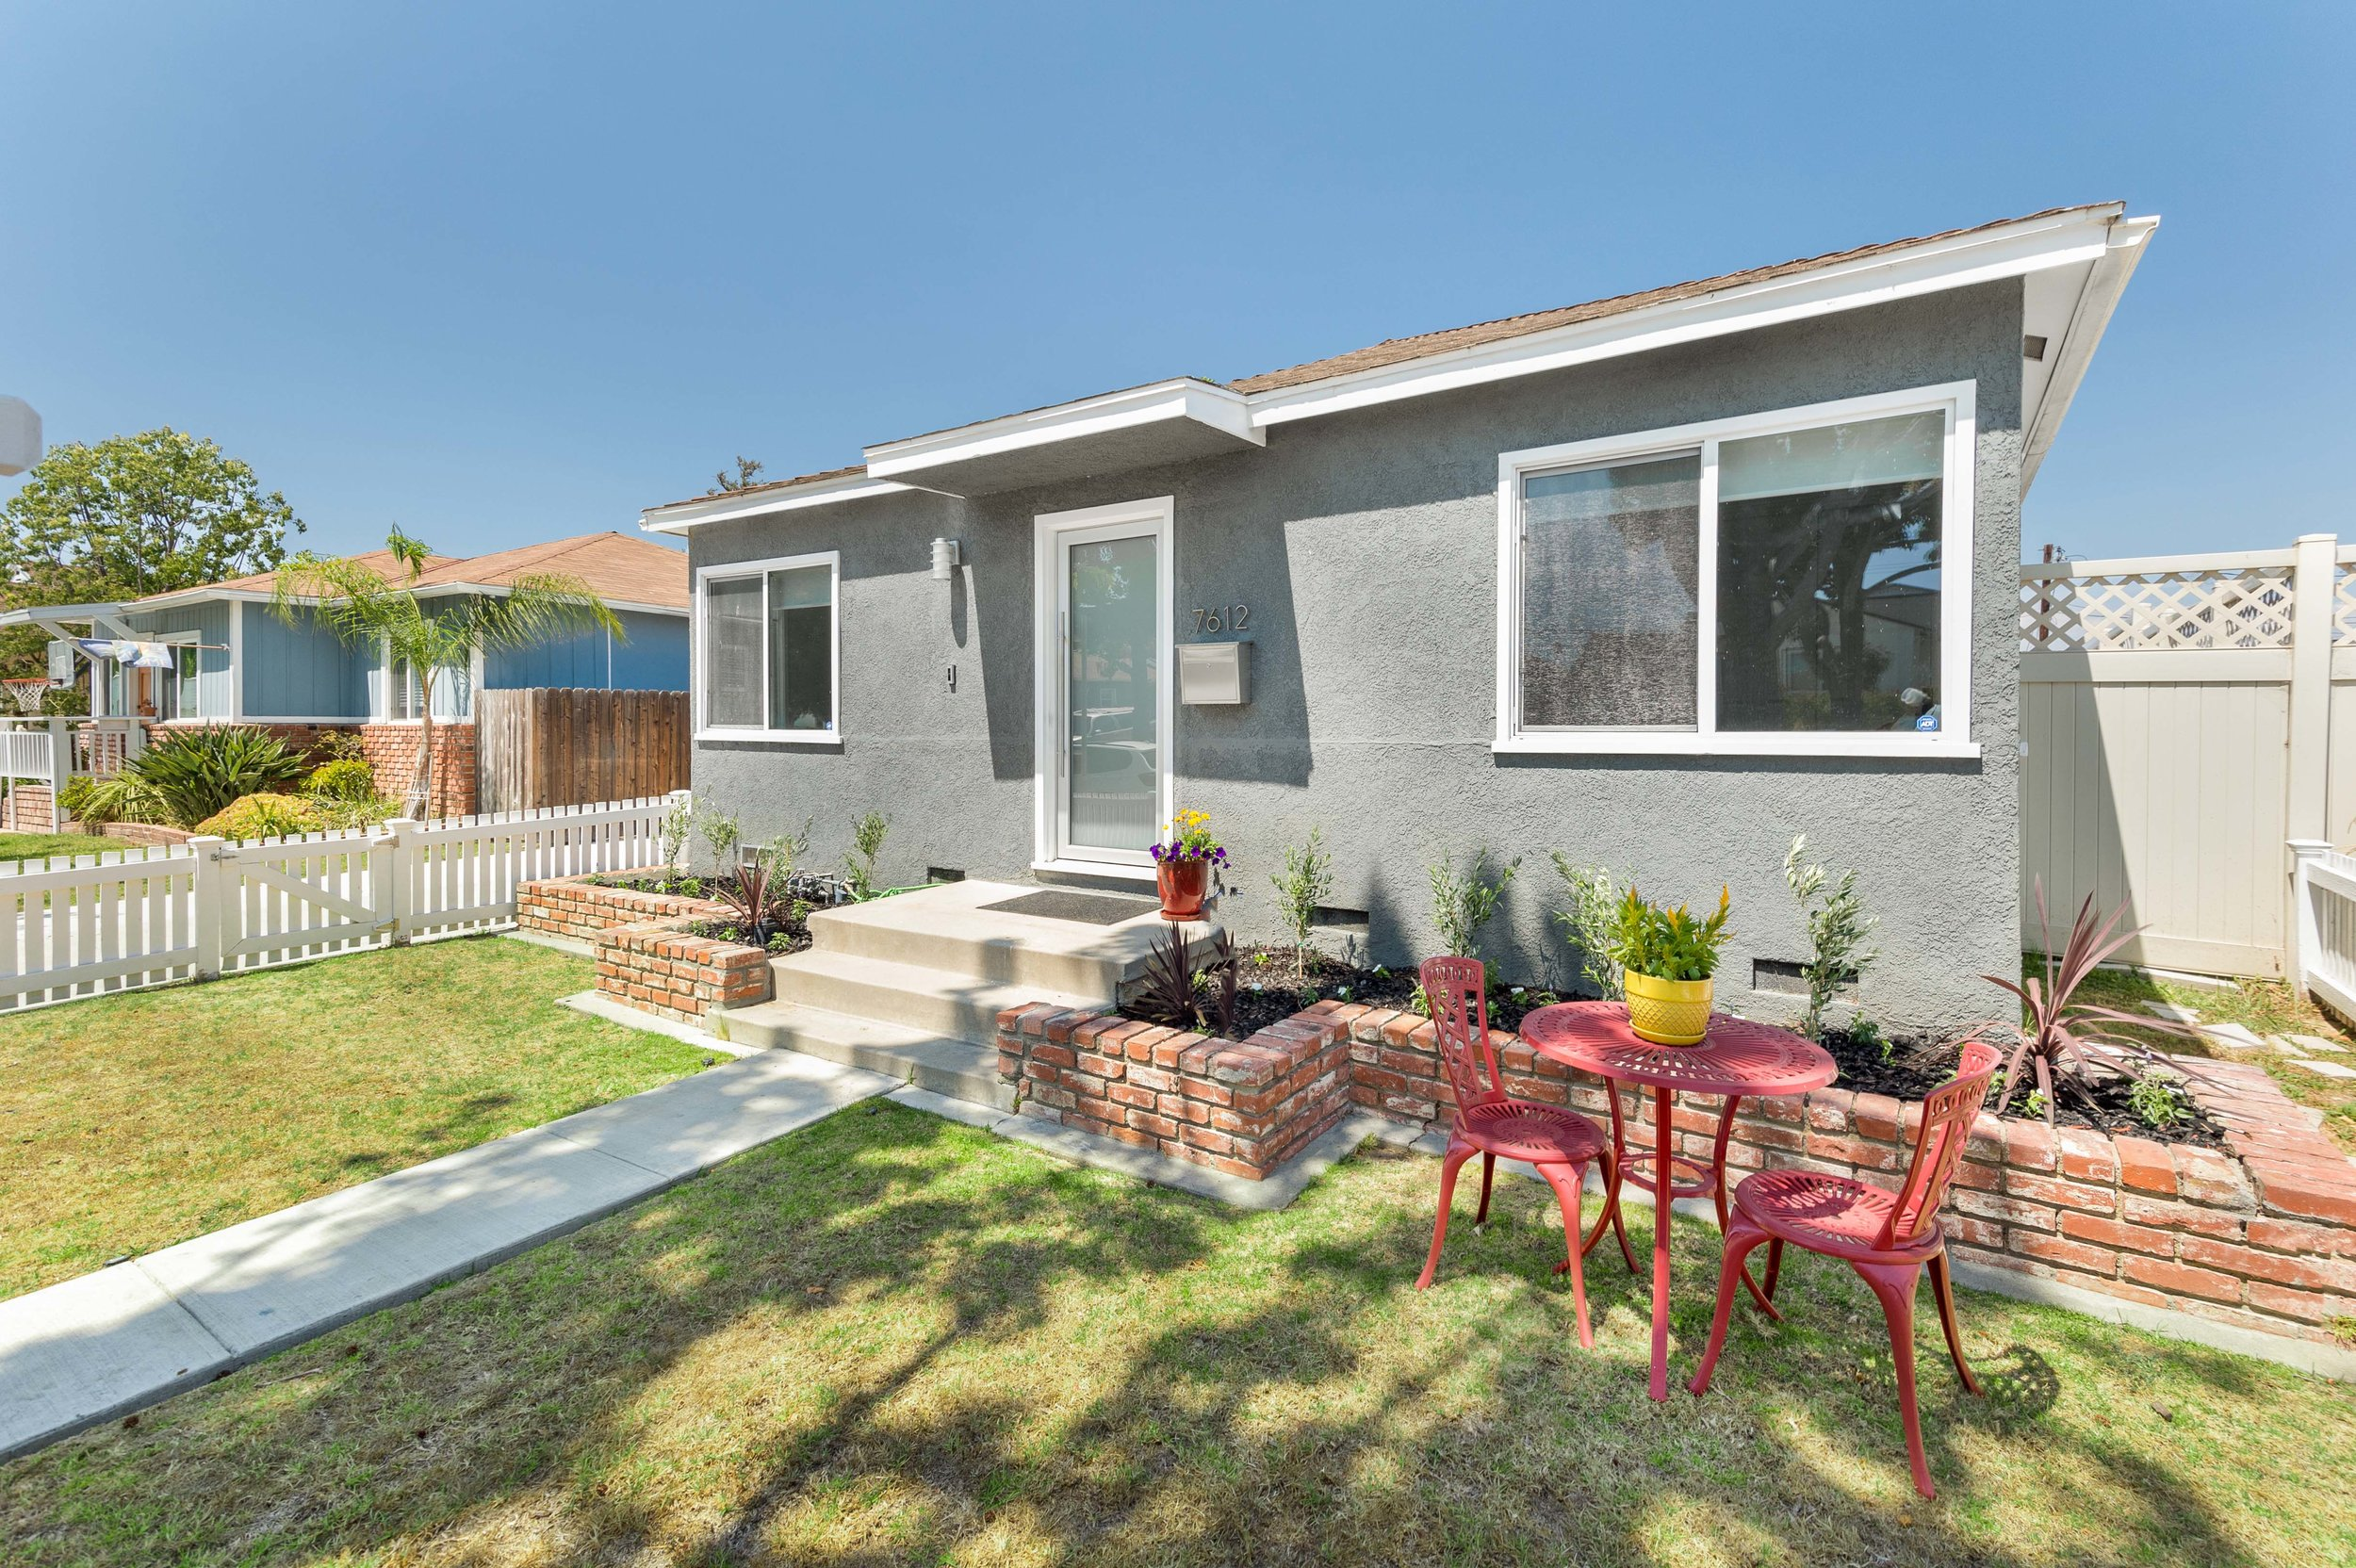 $950,000 | 7612 Midfield Ave, Westchester